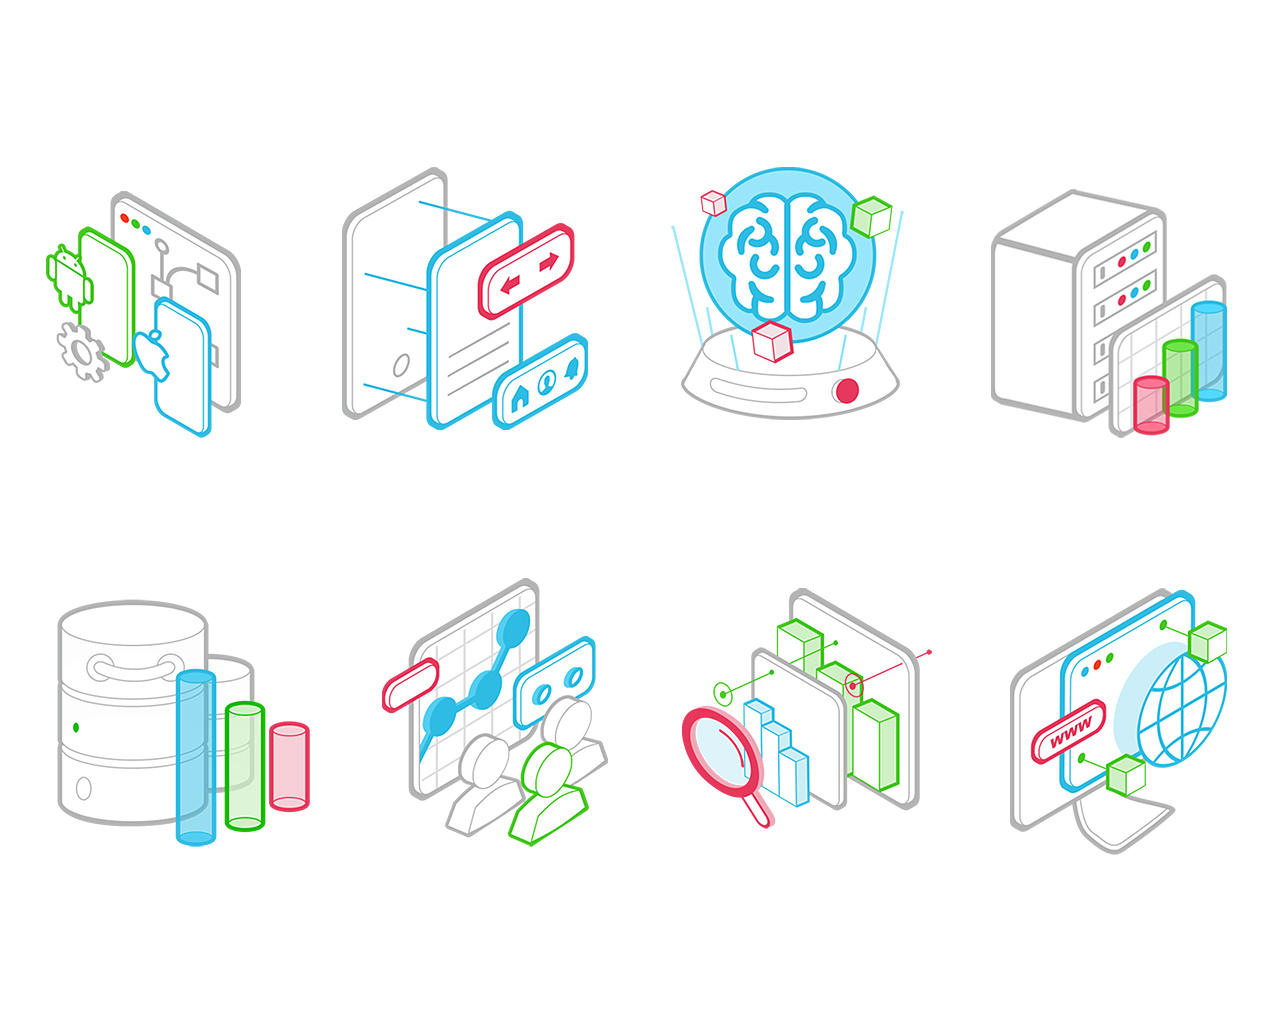 Glyphicon/Material Design Icons by Northwood - 109347